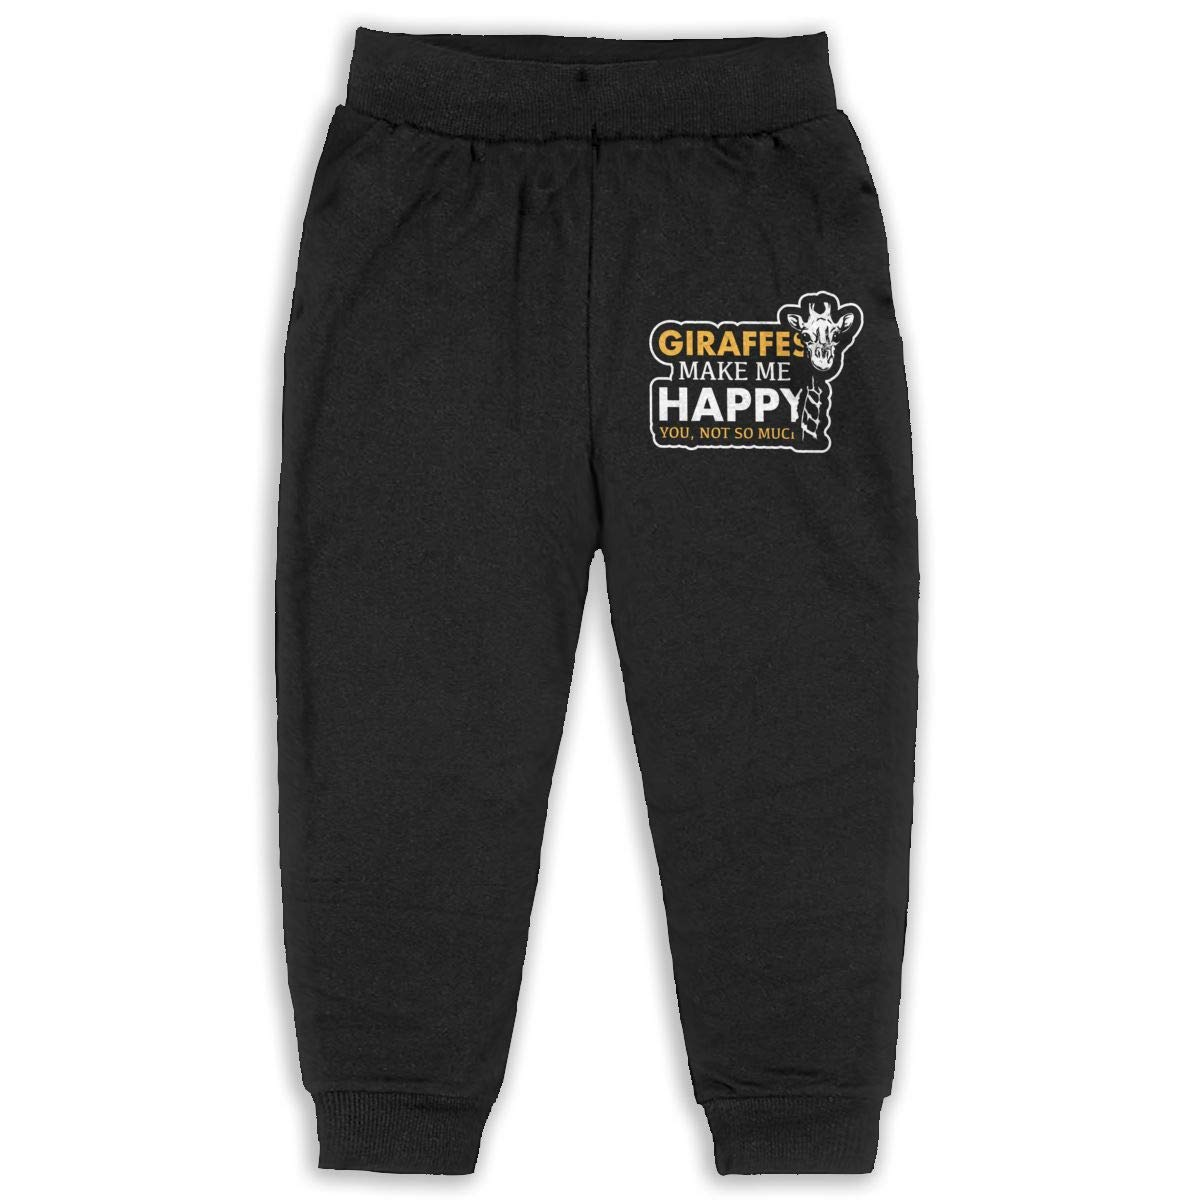 Giraffes Make Me Happy You Not So Much 2-6T Boys Active Joggers Sweatpants